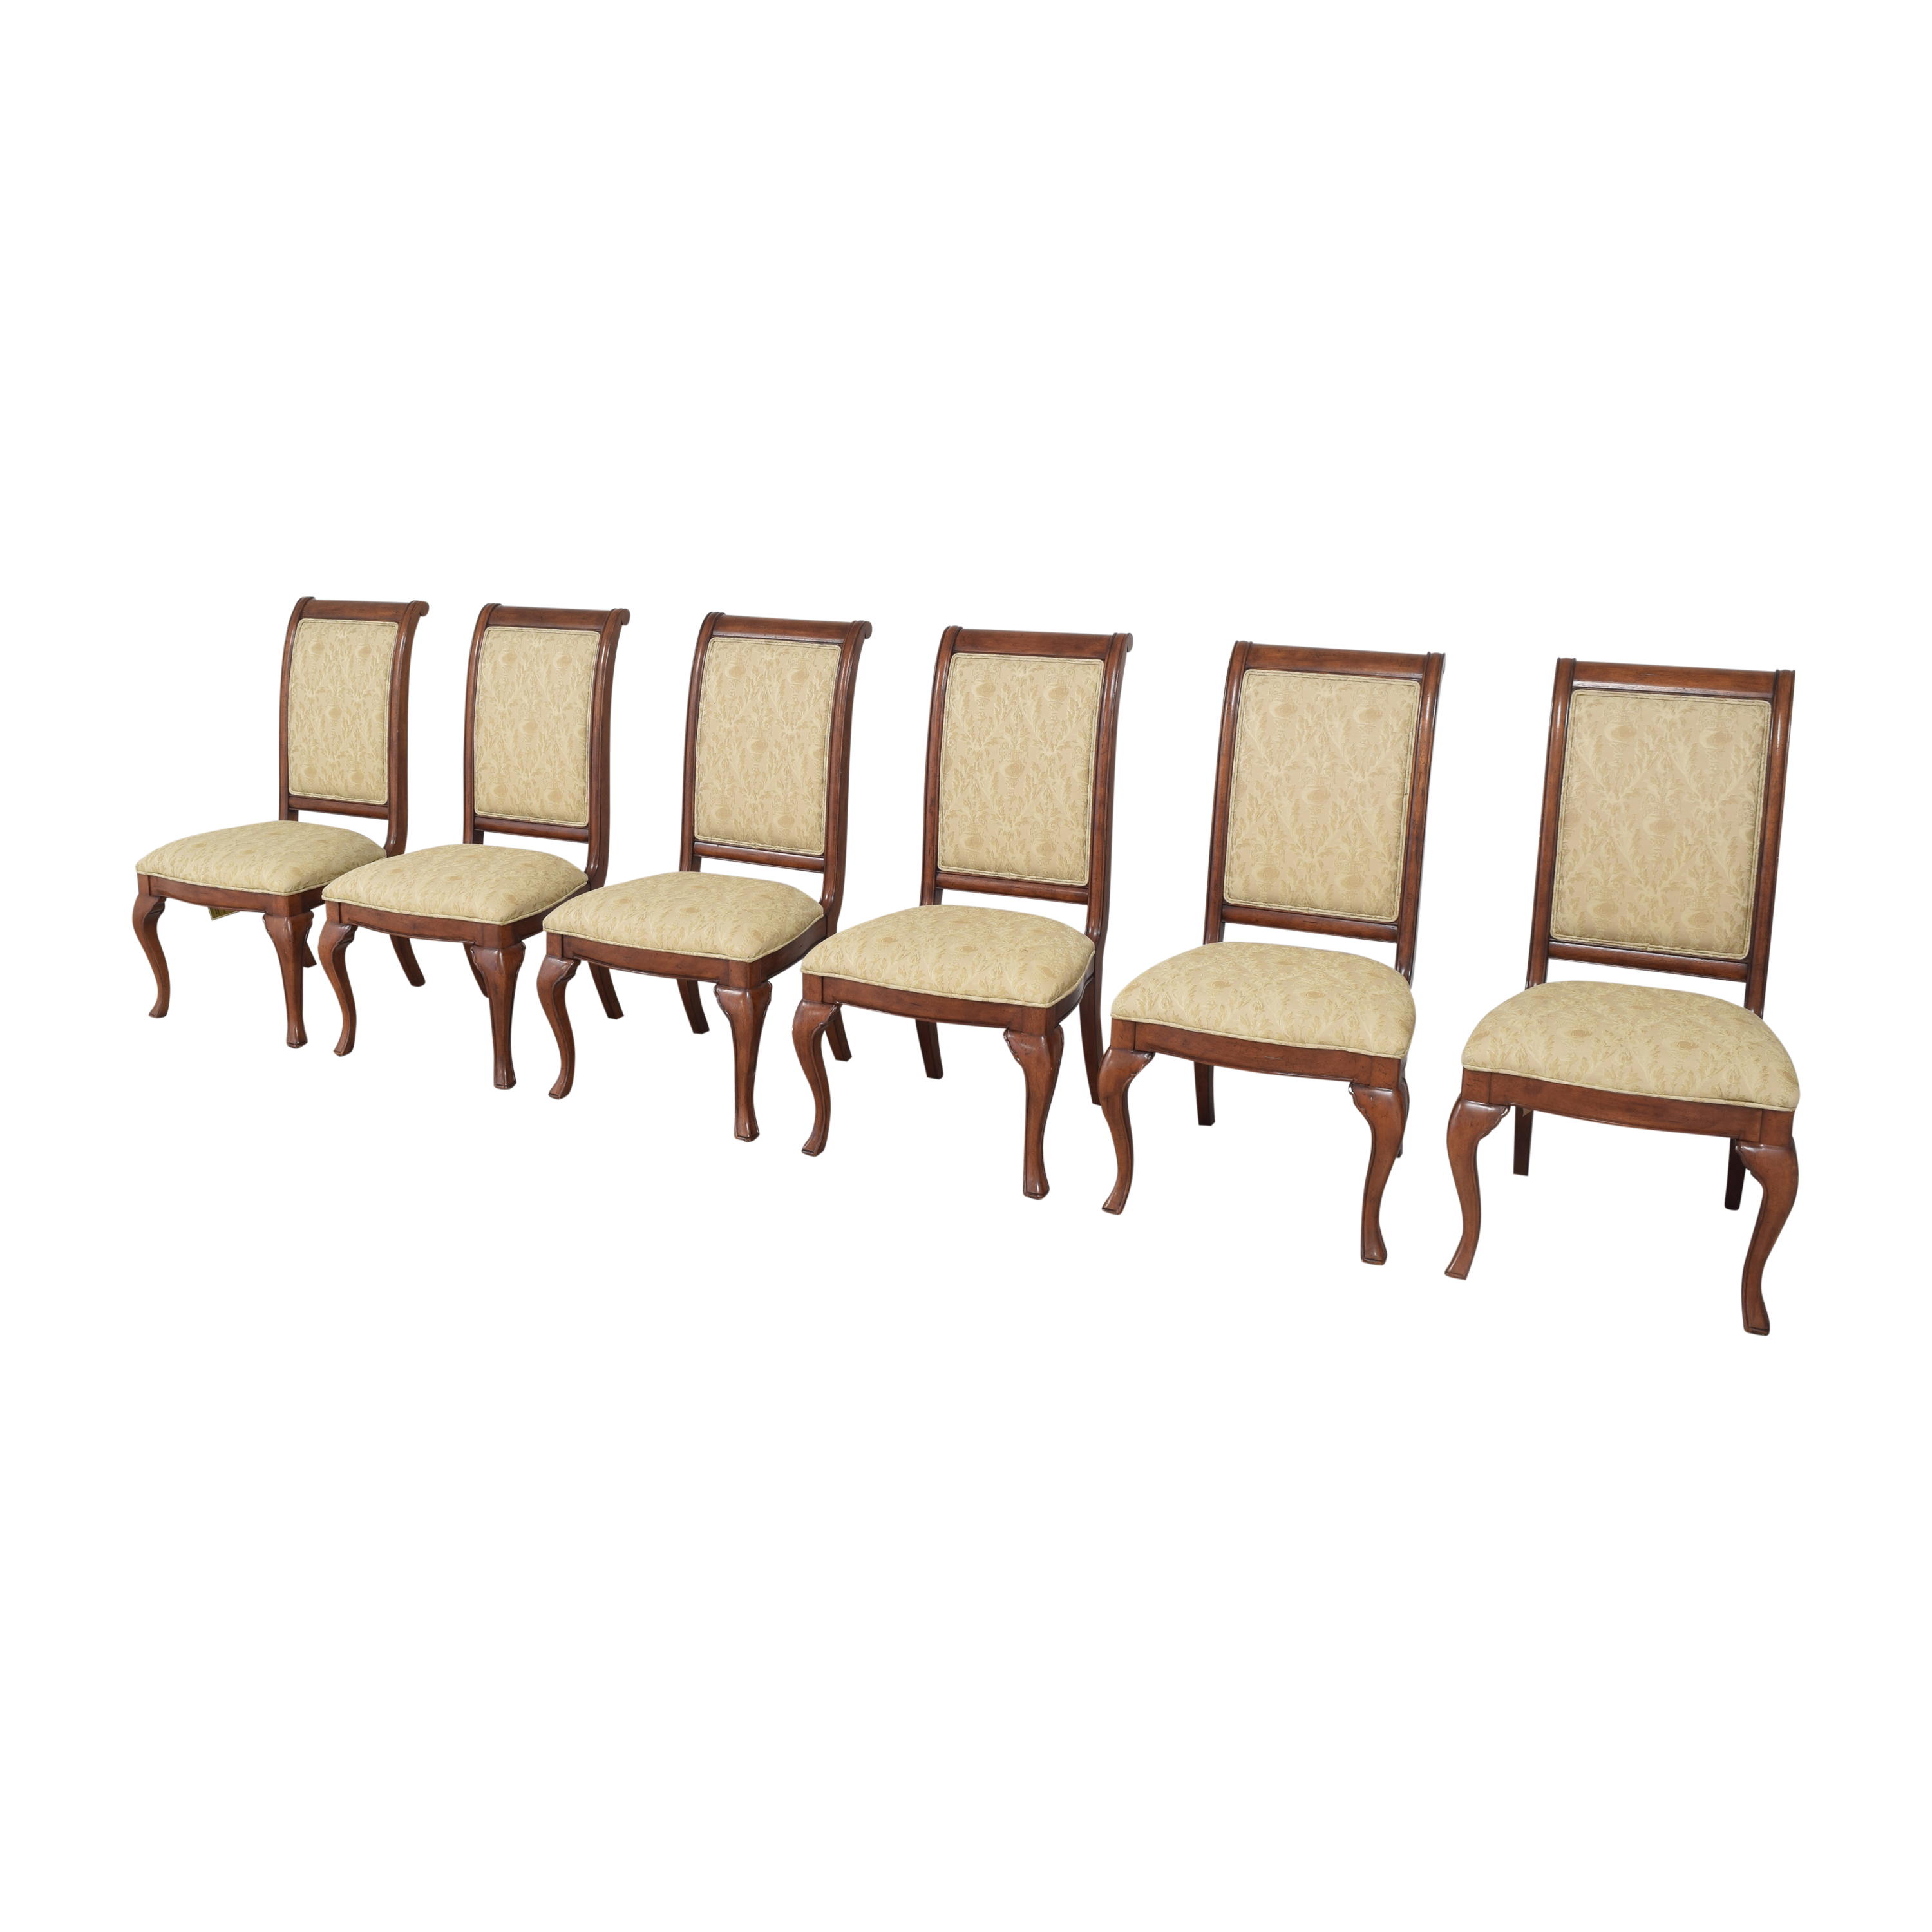 Thomasville Upholstered Dining Chairs  Thomasville